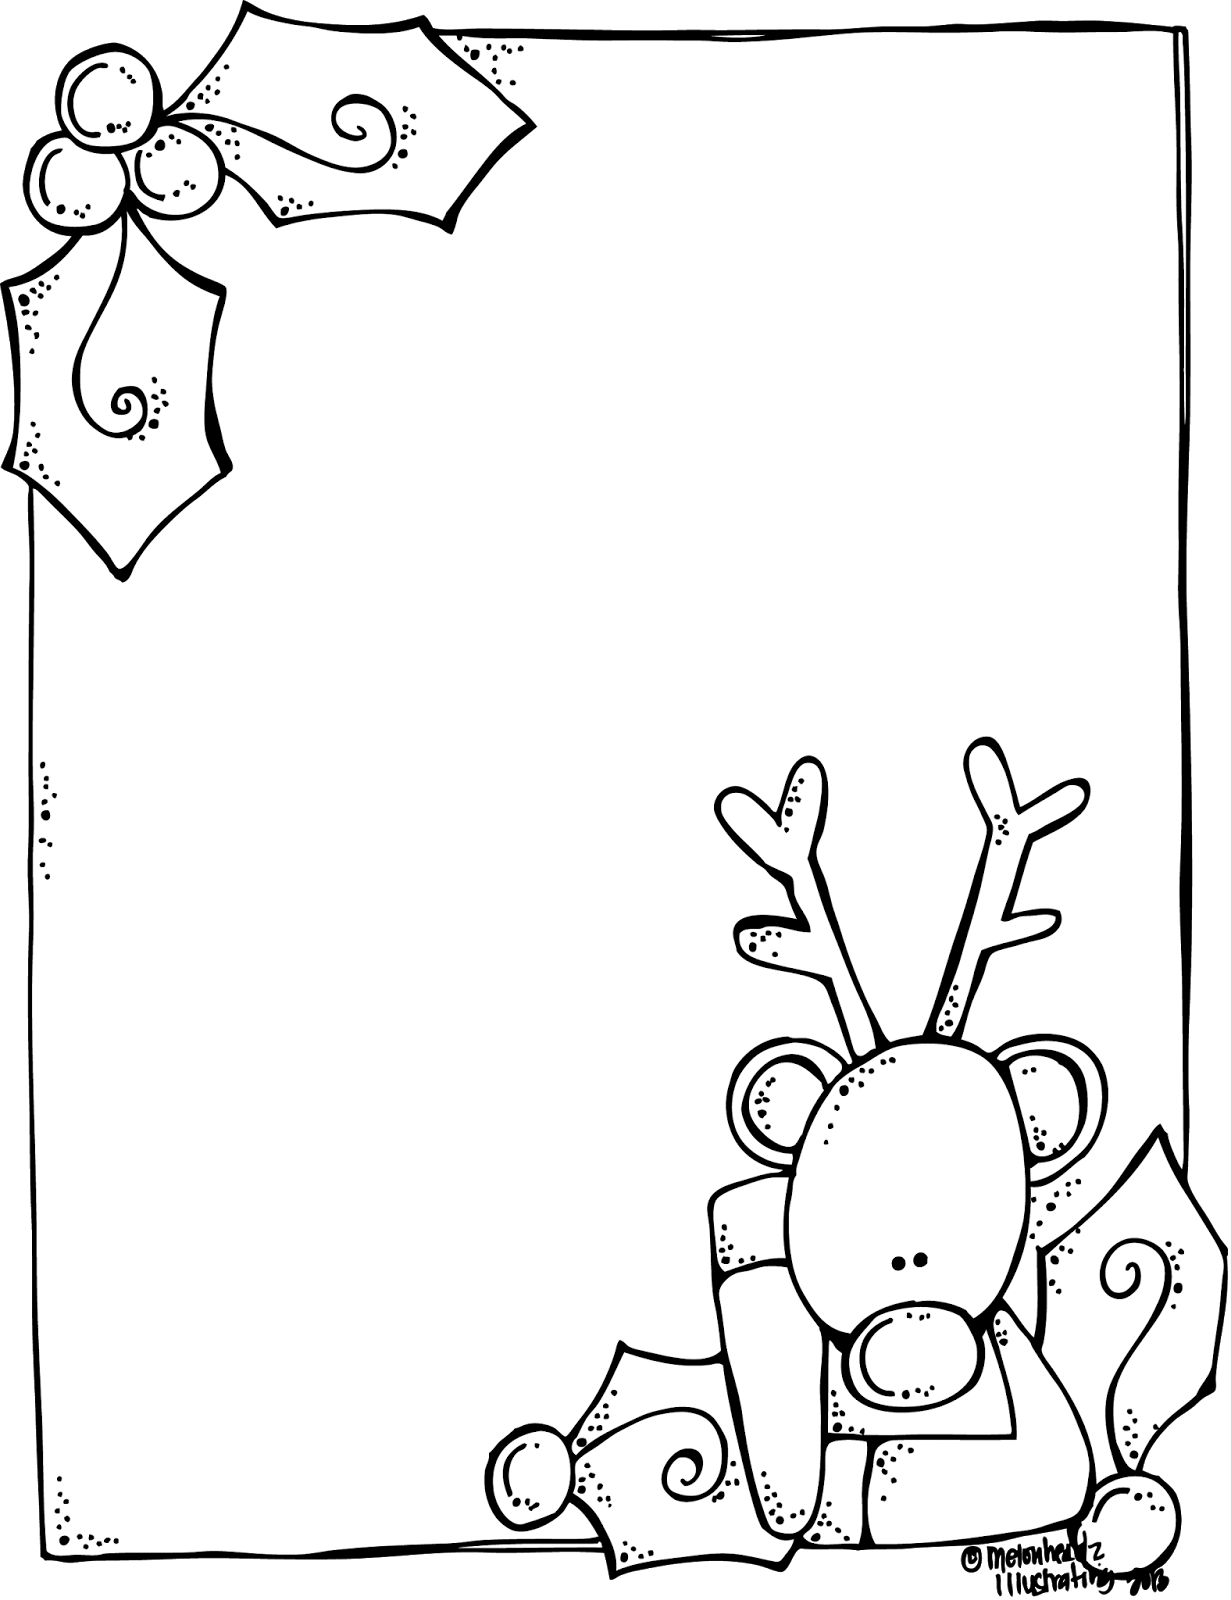 christmas picture frames coloring pages - photo#37